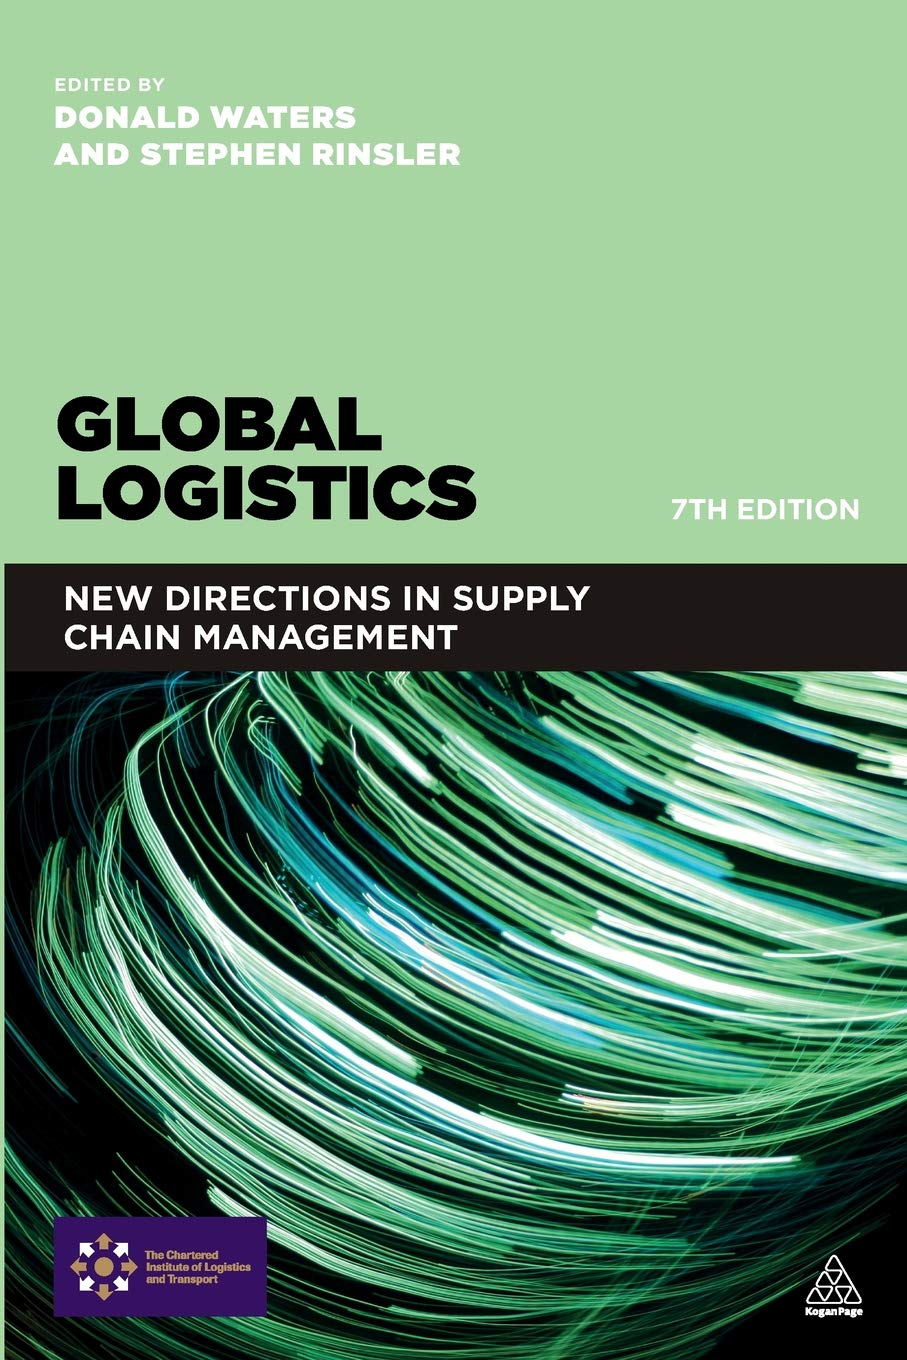 Global Logistics: New Directions in Supply Chain